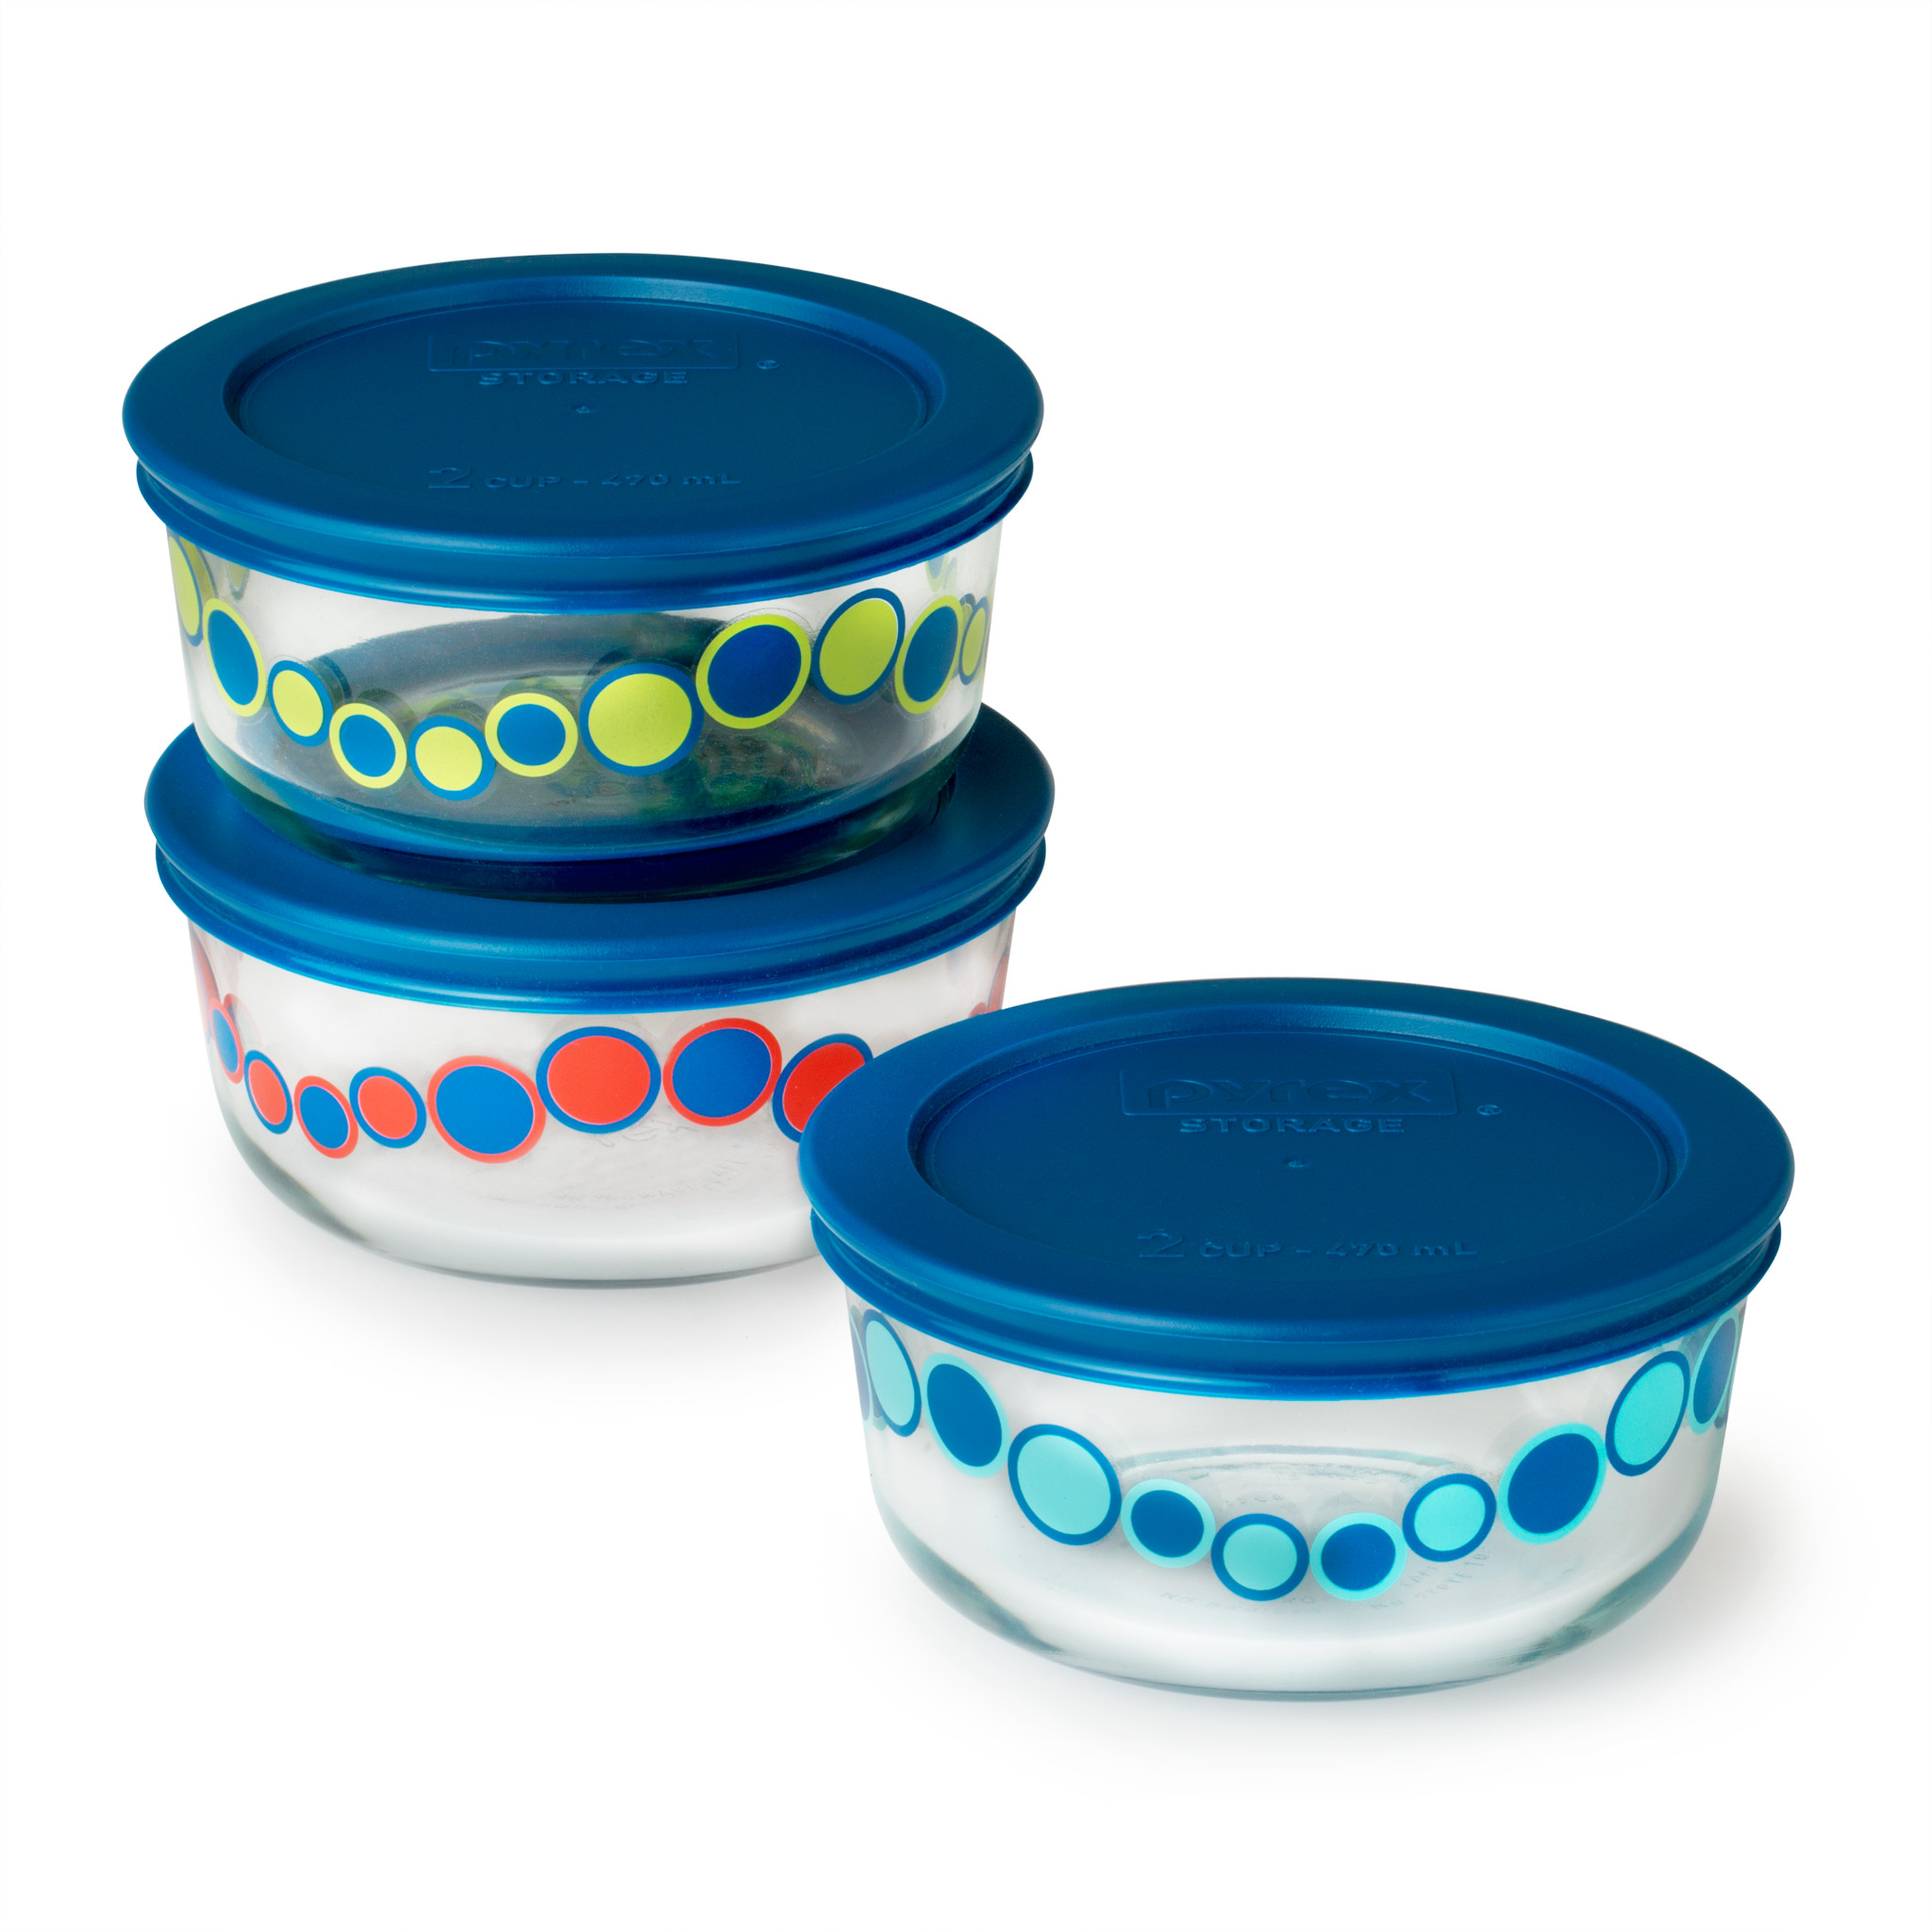 Pyrex Simply Store 6-Pc 2 Cup Storage Dish Value Set, Assorted Cirque